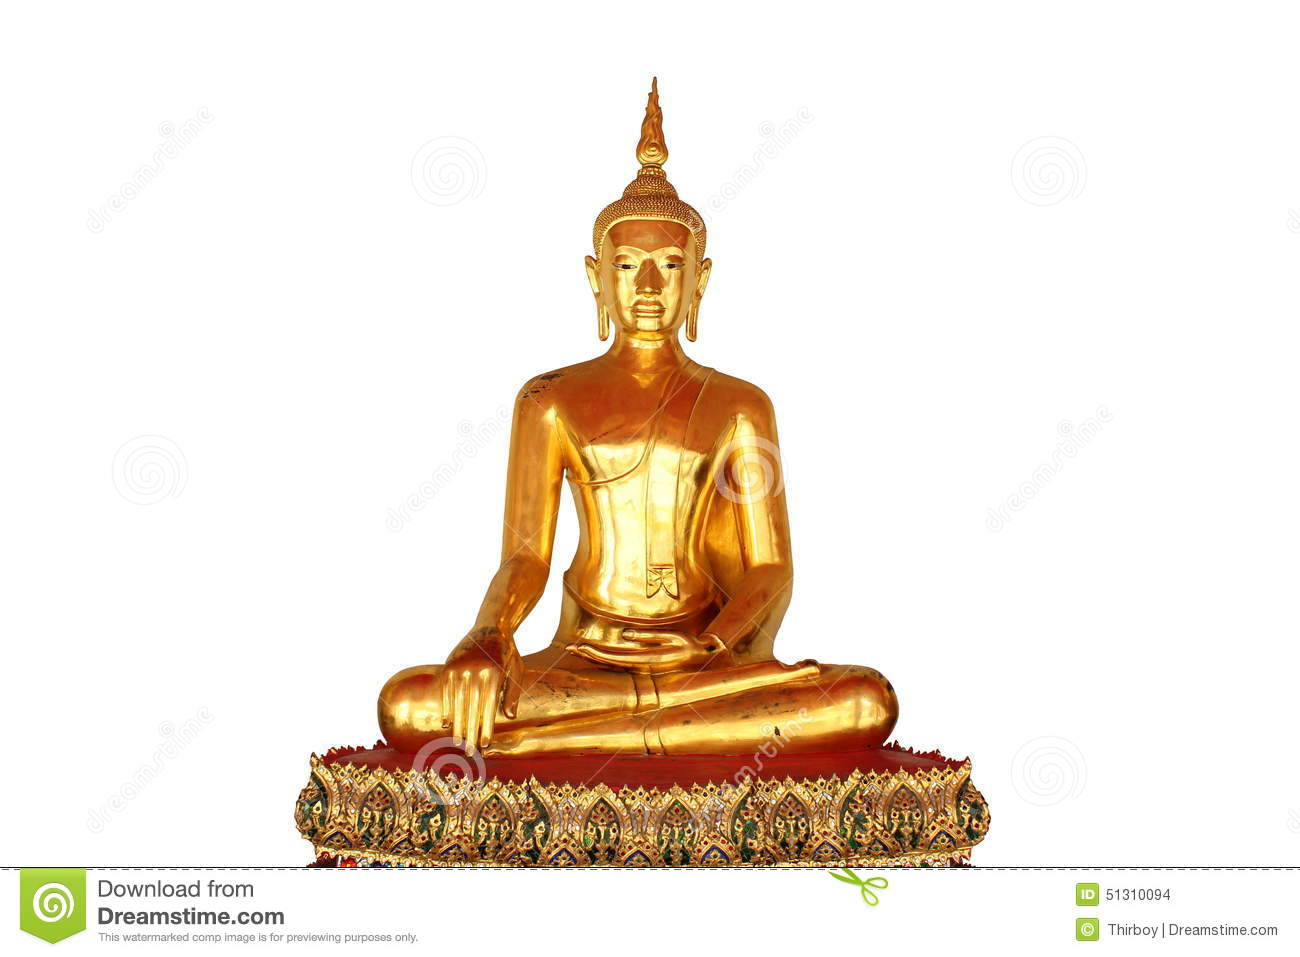 cresskill buddhist singles Buddhist dhamma talk, pali chanting, sanskrit chanting & song,mp3,audio,video free download malaysia, petaling jaya tibetan han version ngo charity home single mother abandoned children myanmar.